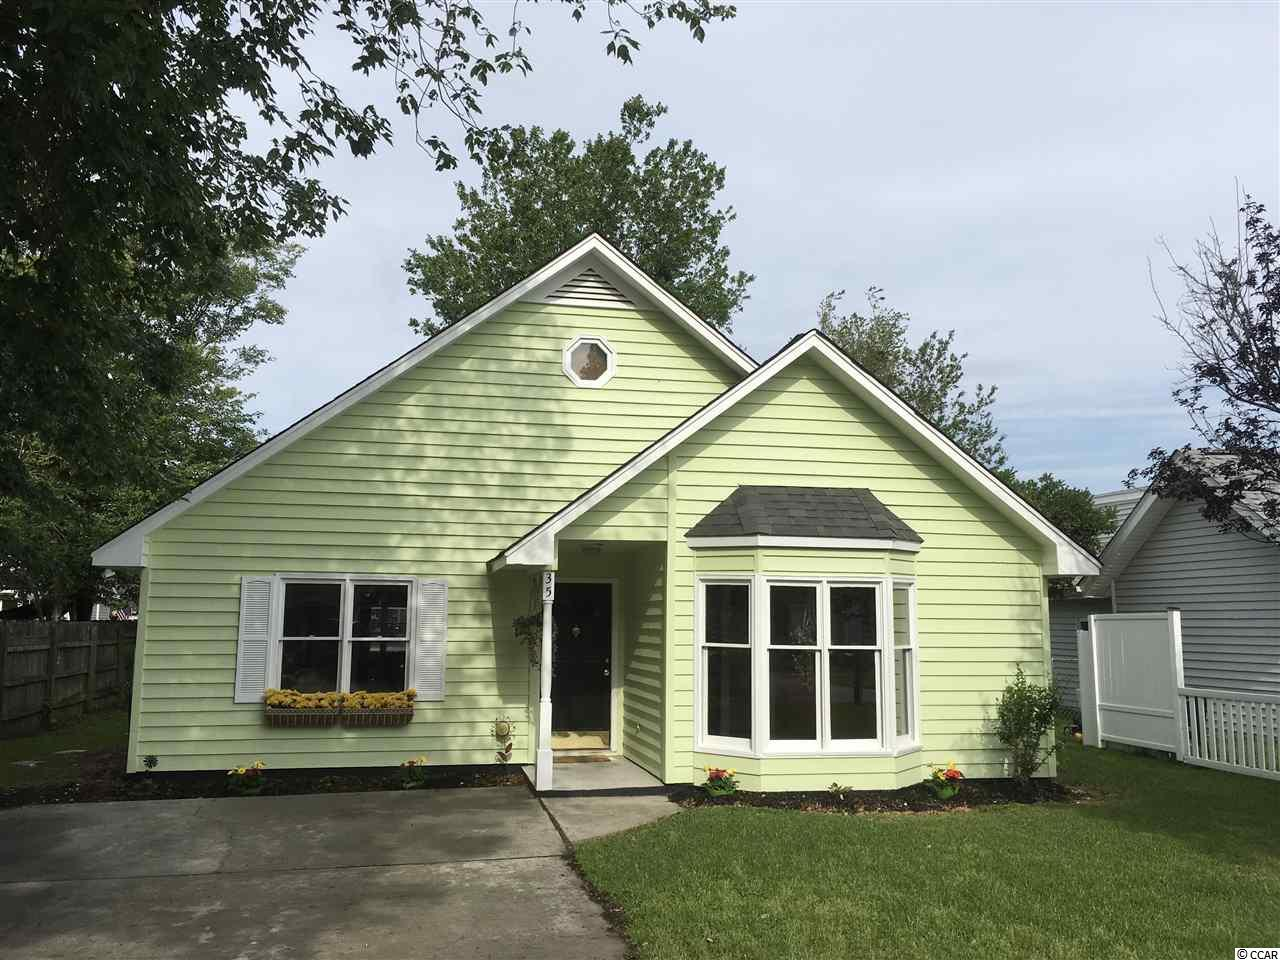 Great starter home, investment property or a 2nd home near the beach! Ready to move in to! Have you been hunting for a home with a fenced in yard, no HOAs, but also close enough to golf cart to the beach?  This spacious 3 bedroom/2 bath  has a brand new bay window(Pella) in the tiled kitchen, overlooking the front yard, and an enclosed Carolina Room that opens to a patio in the back.  Freshly painted on the exterior, new roof in 2018.  Fantastic location in family friendly Surfside Beach just west of business 17 off of Glenns Bay Rd.